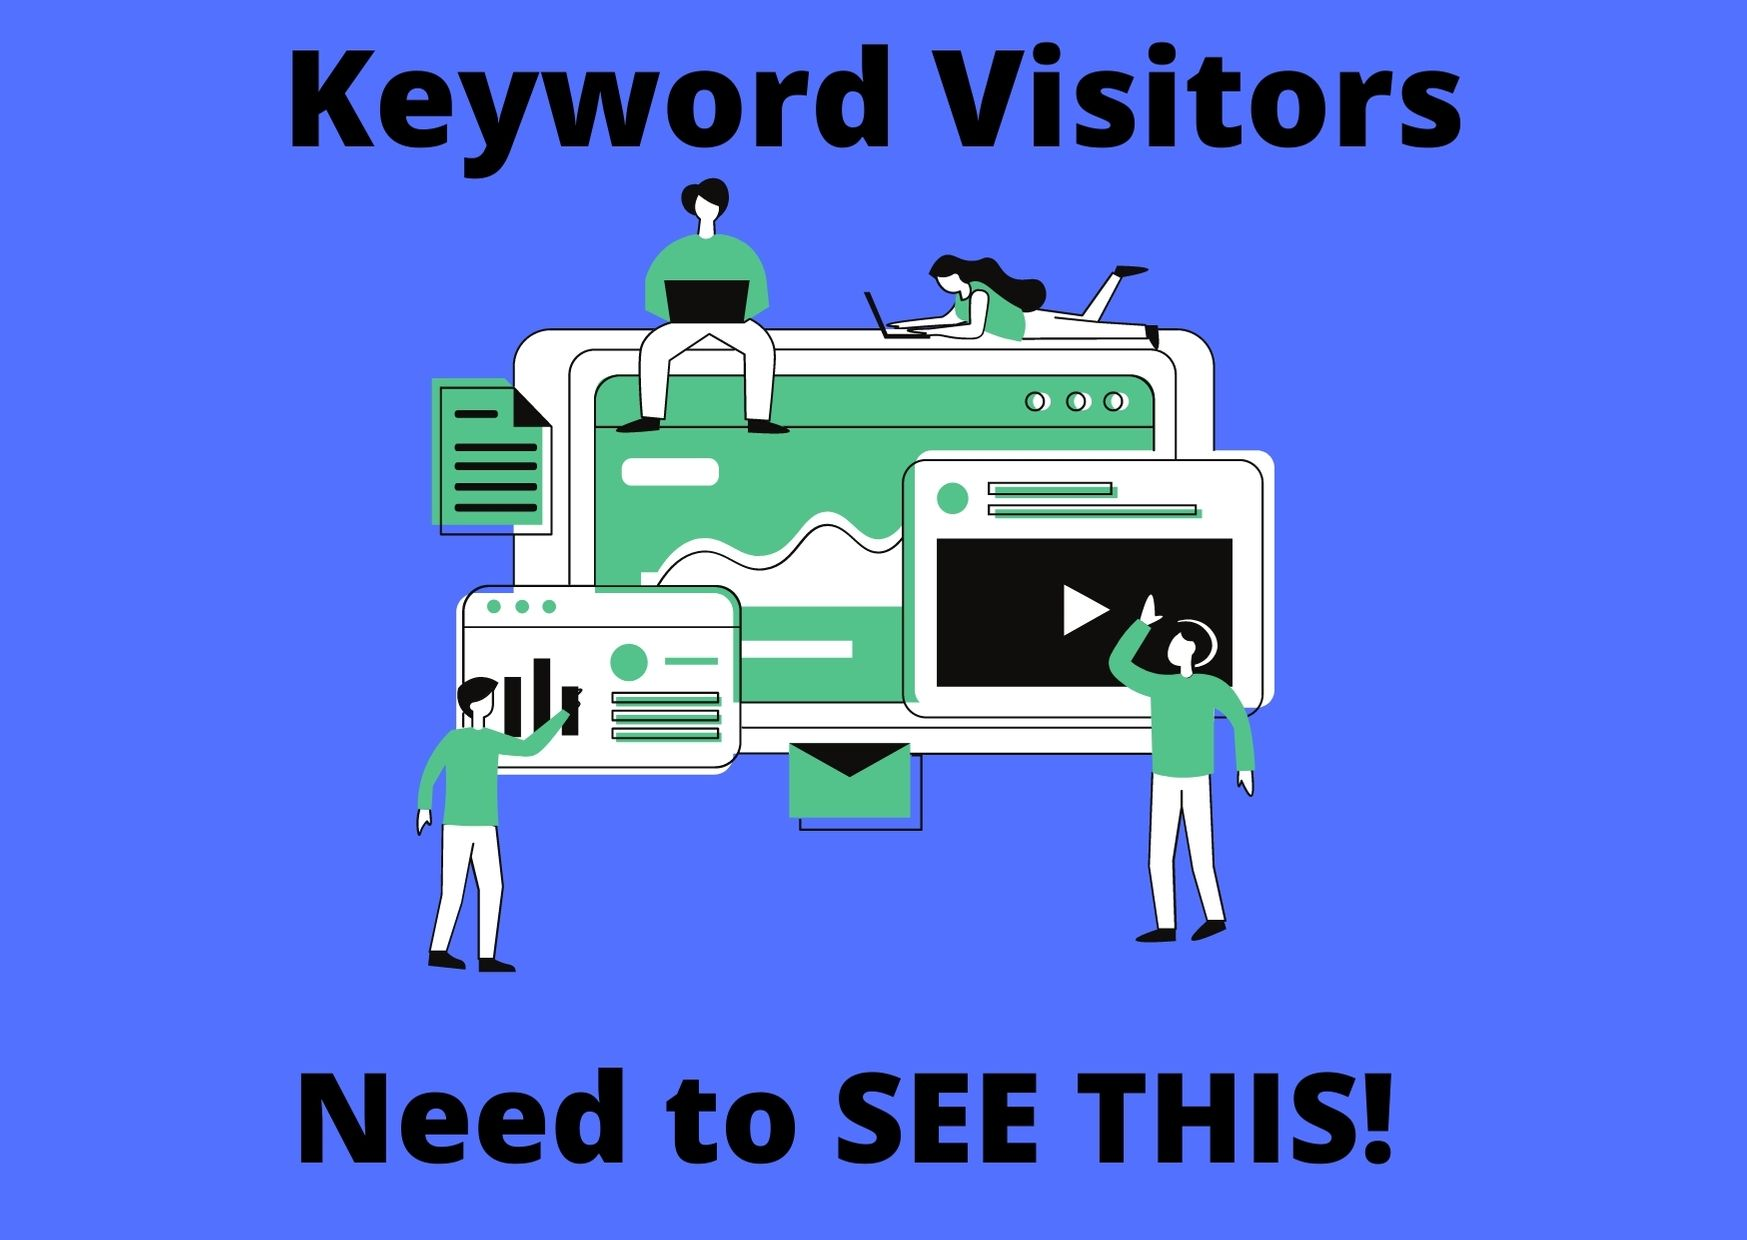 Keyword Visitors from worlds largest websites Must have